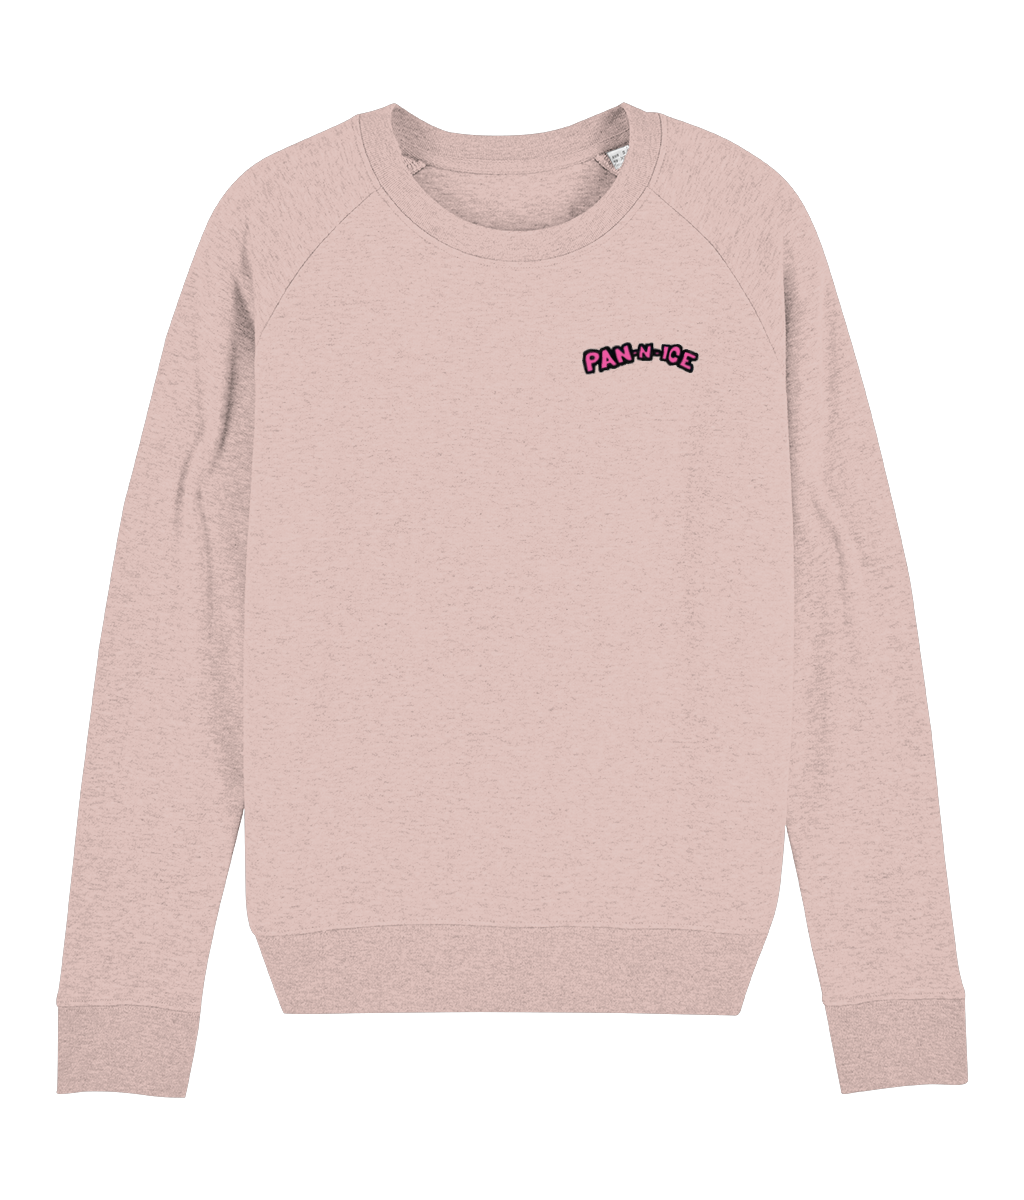 Woman's Pan-n-Ice sweatshirt